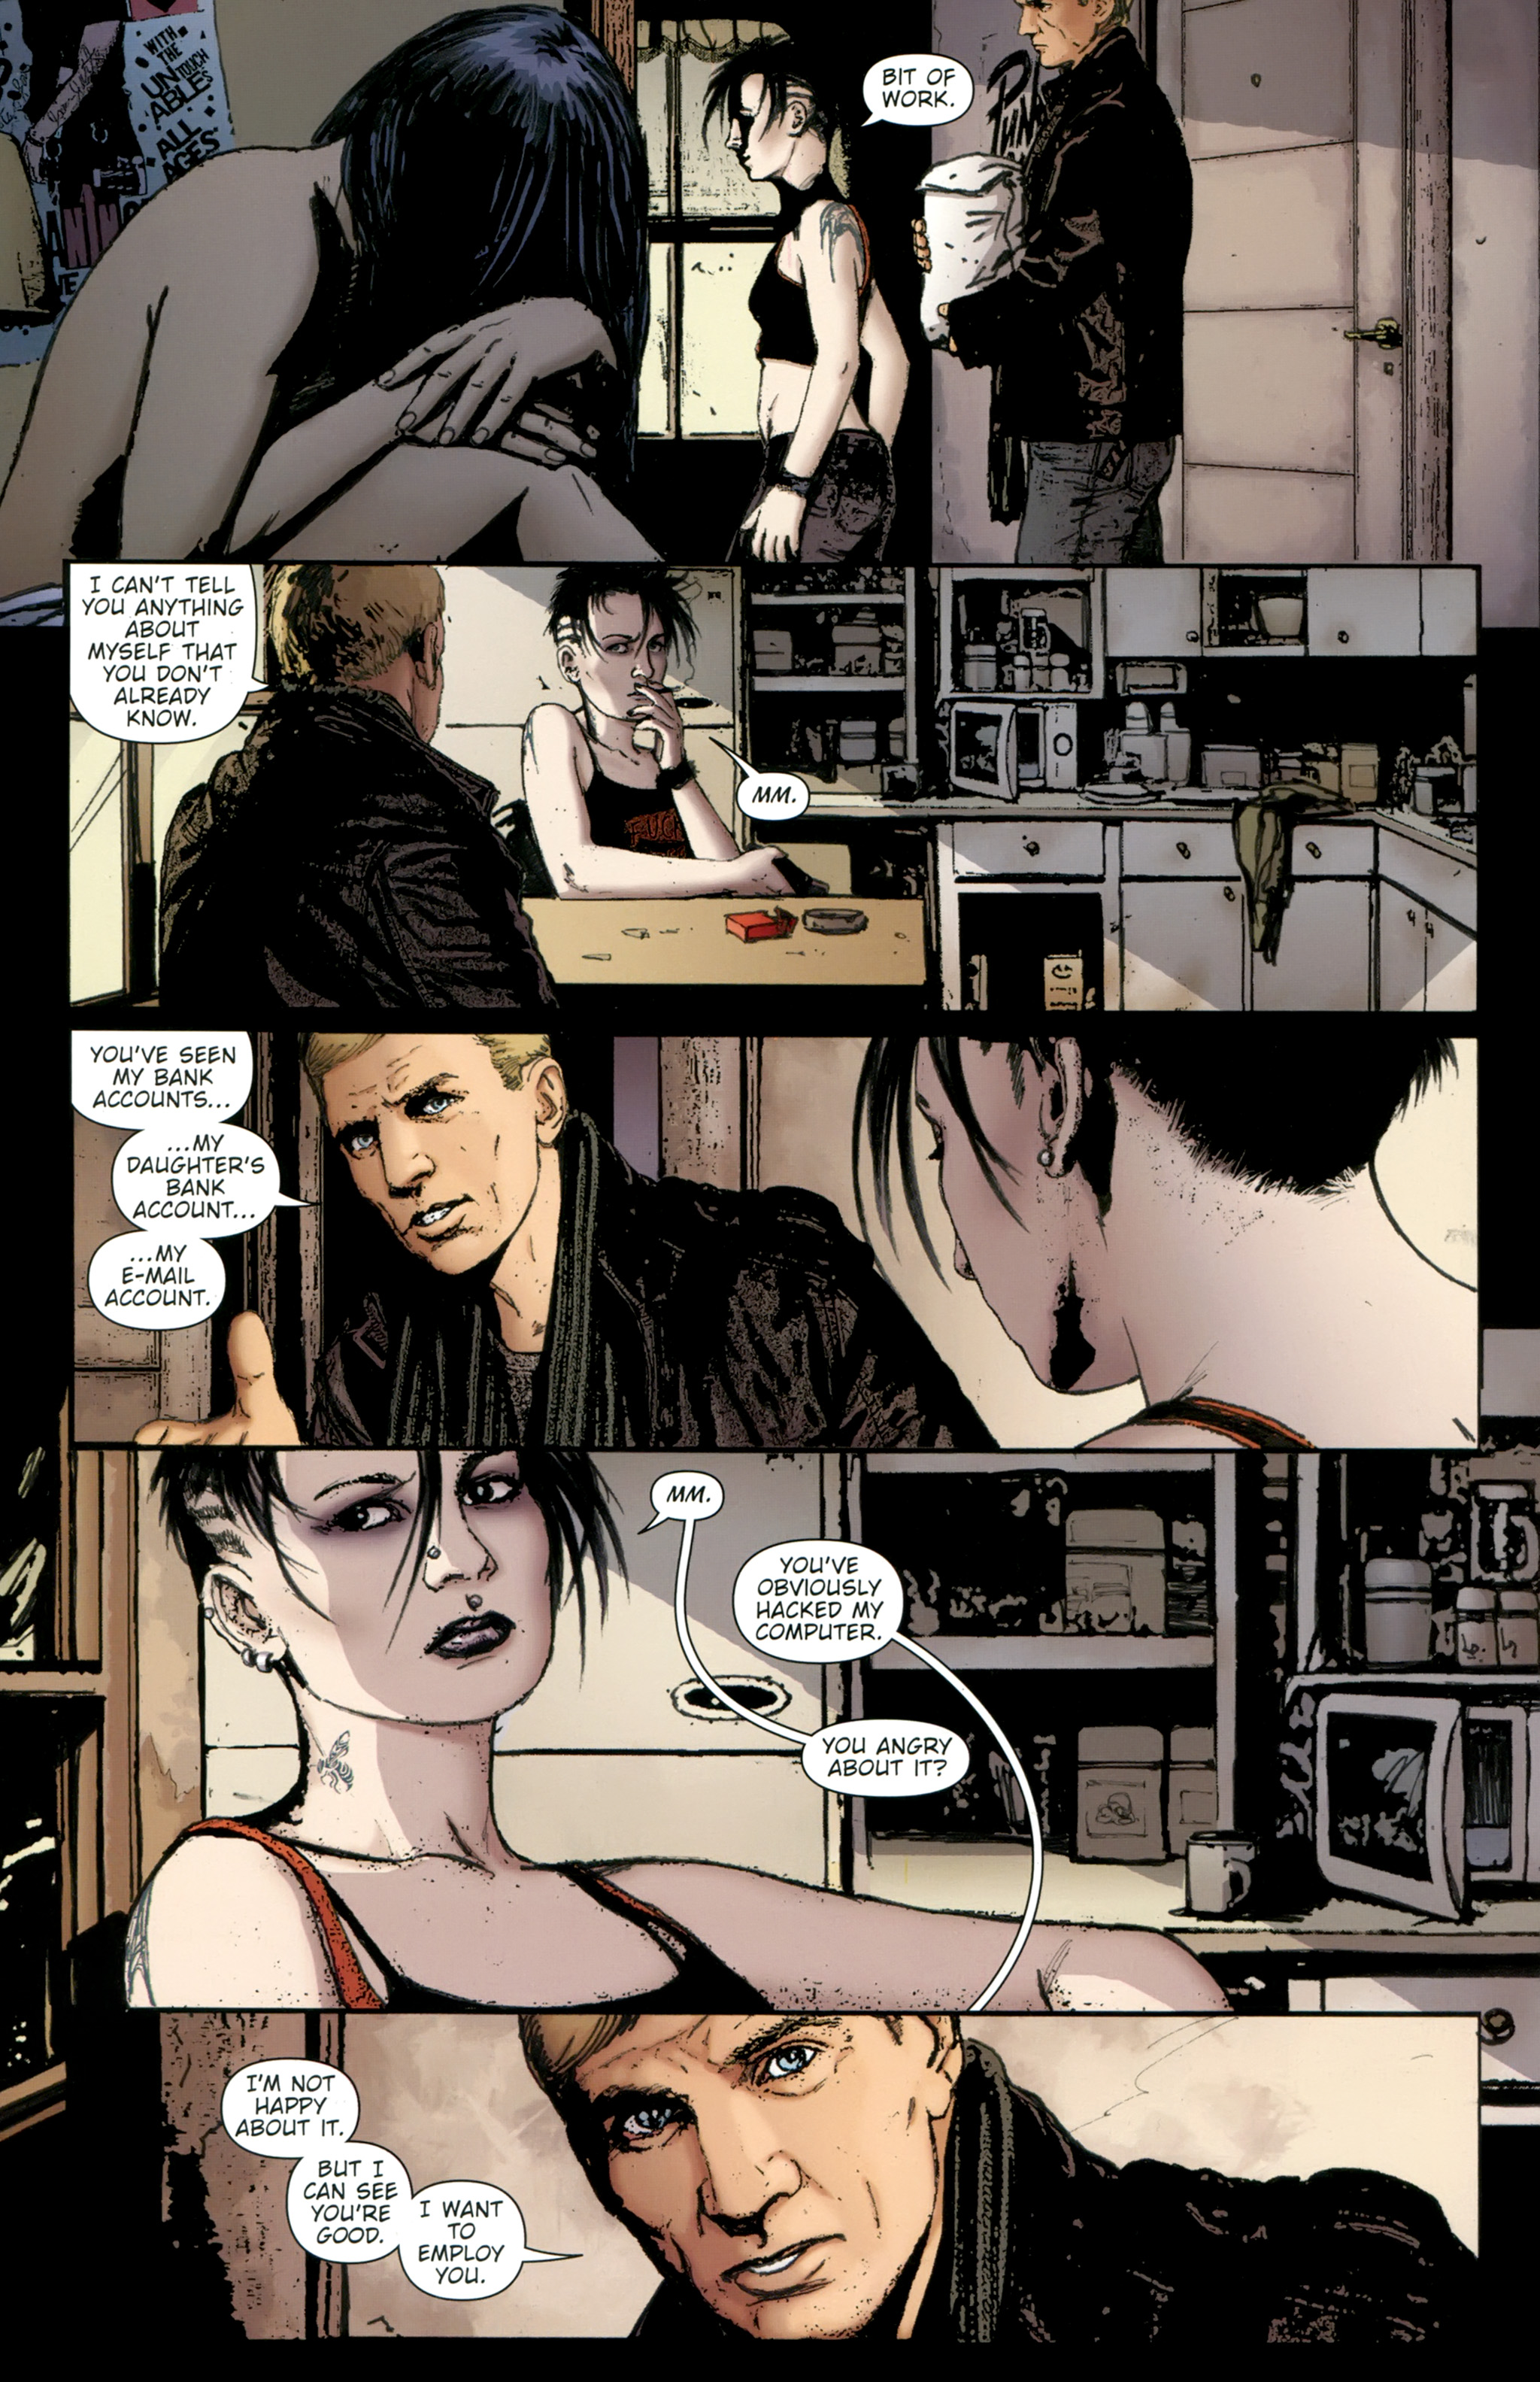 Read online The Girl With the Dragon Tattoo comic -  Issue # TPB 2 - 46